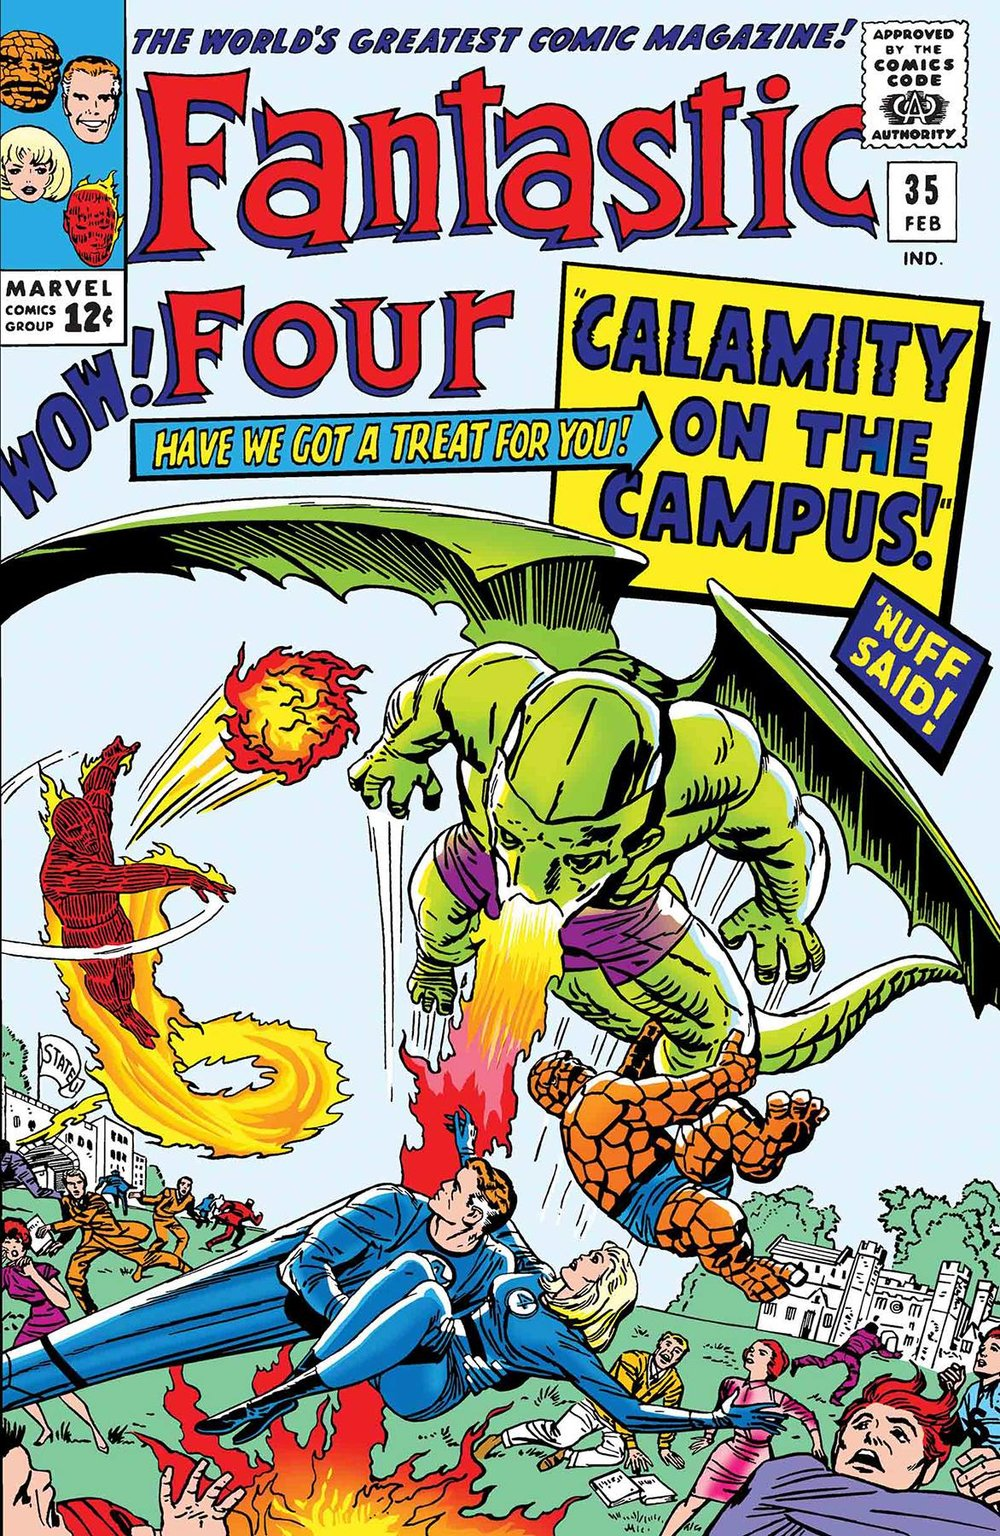 TRUE BELIEVERS FANTASTIC FOUR DRAGON MAN 1.jpg